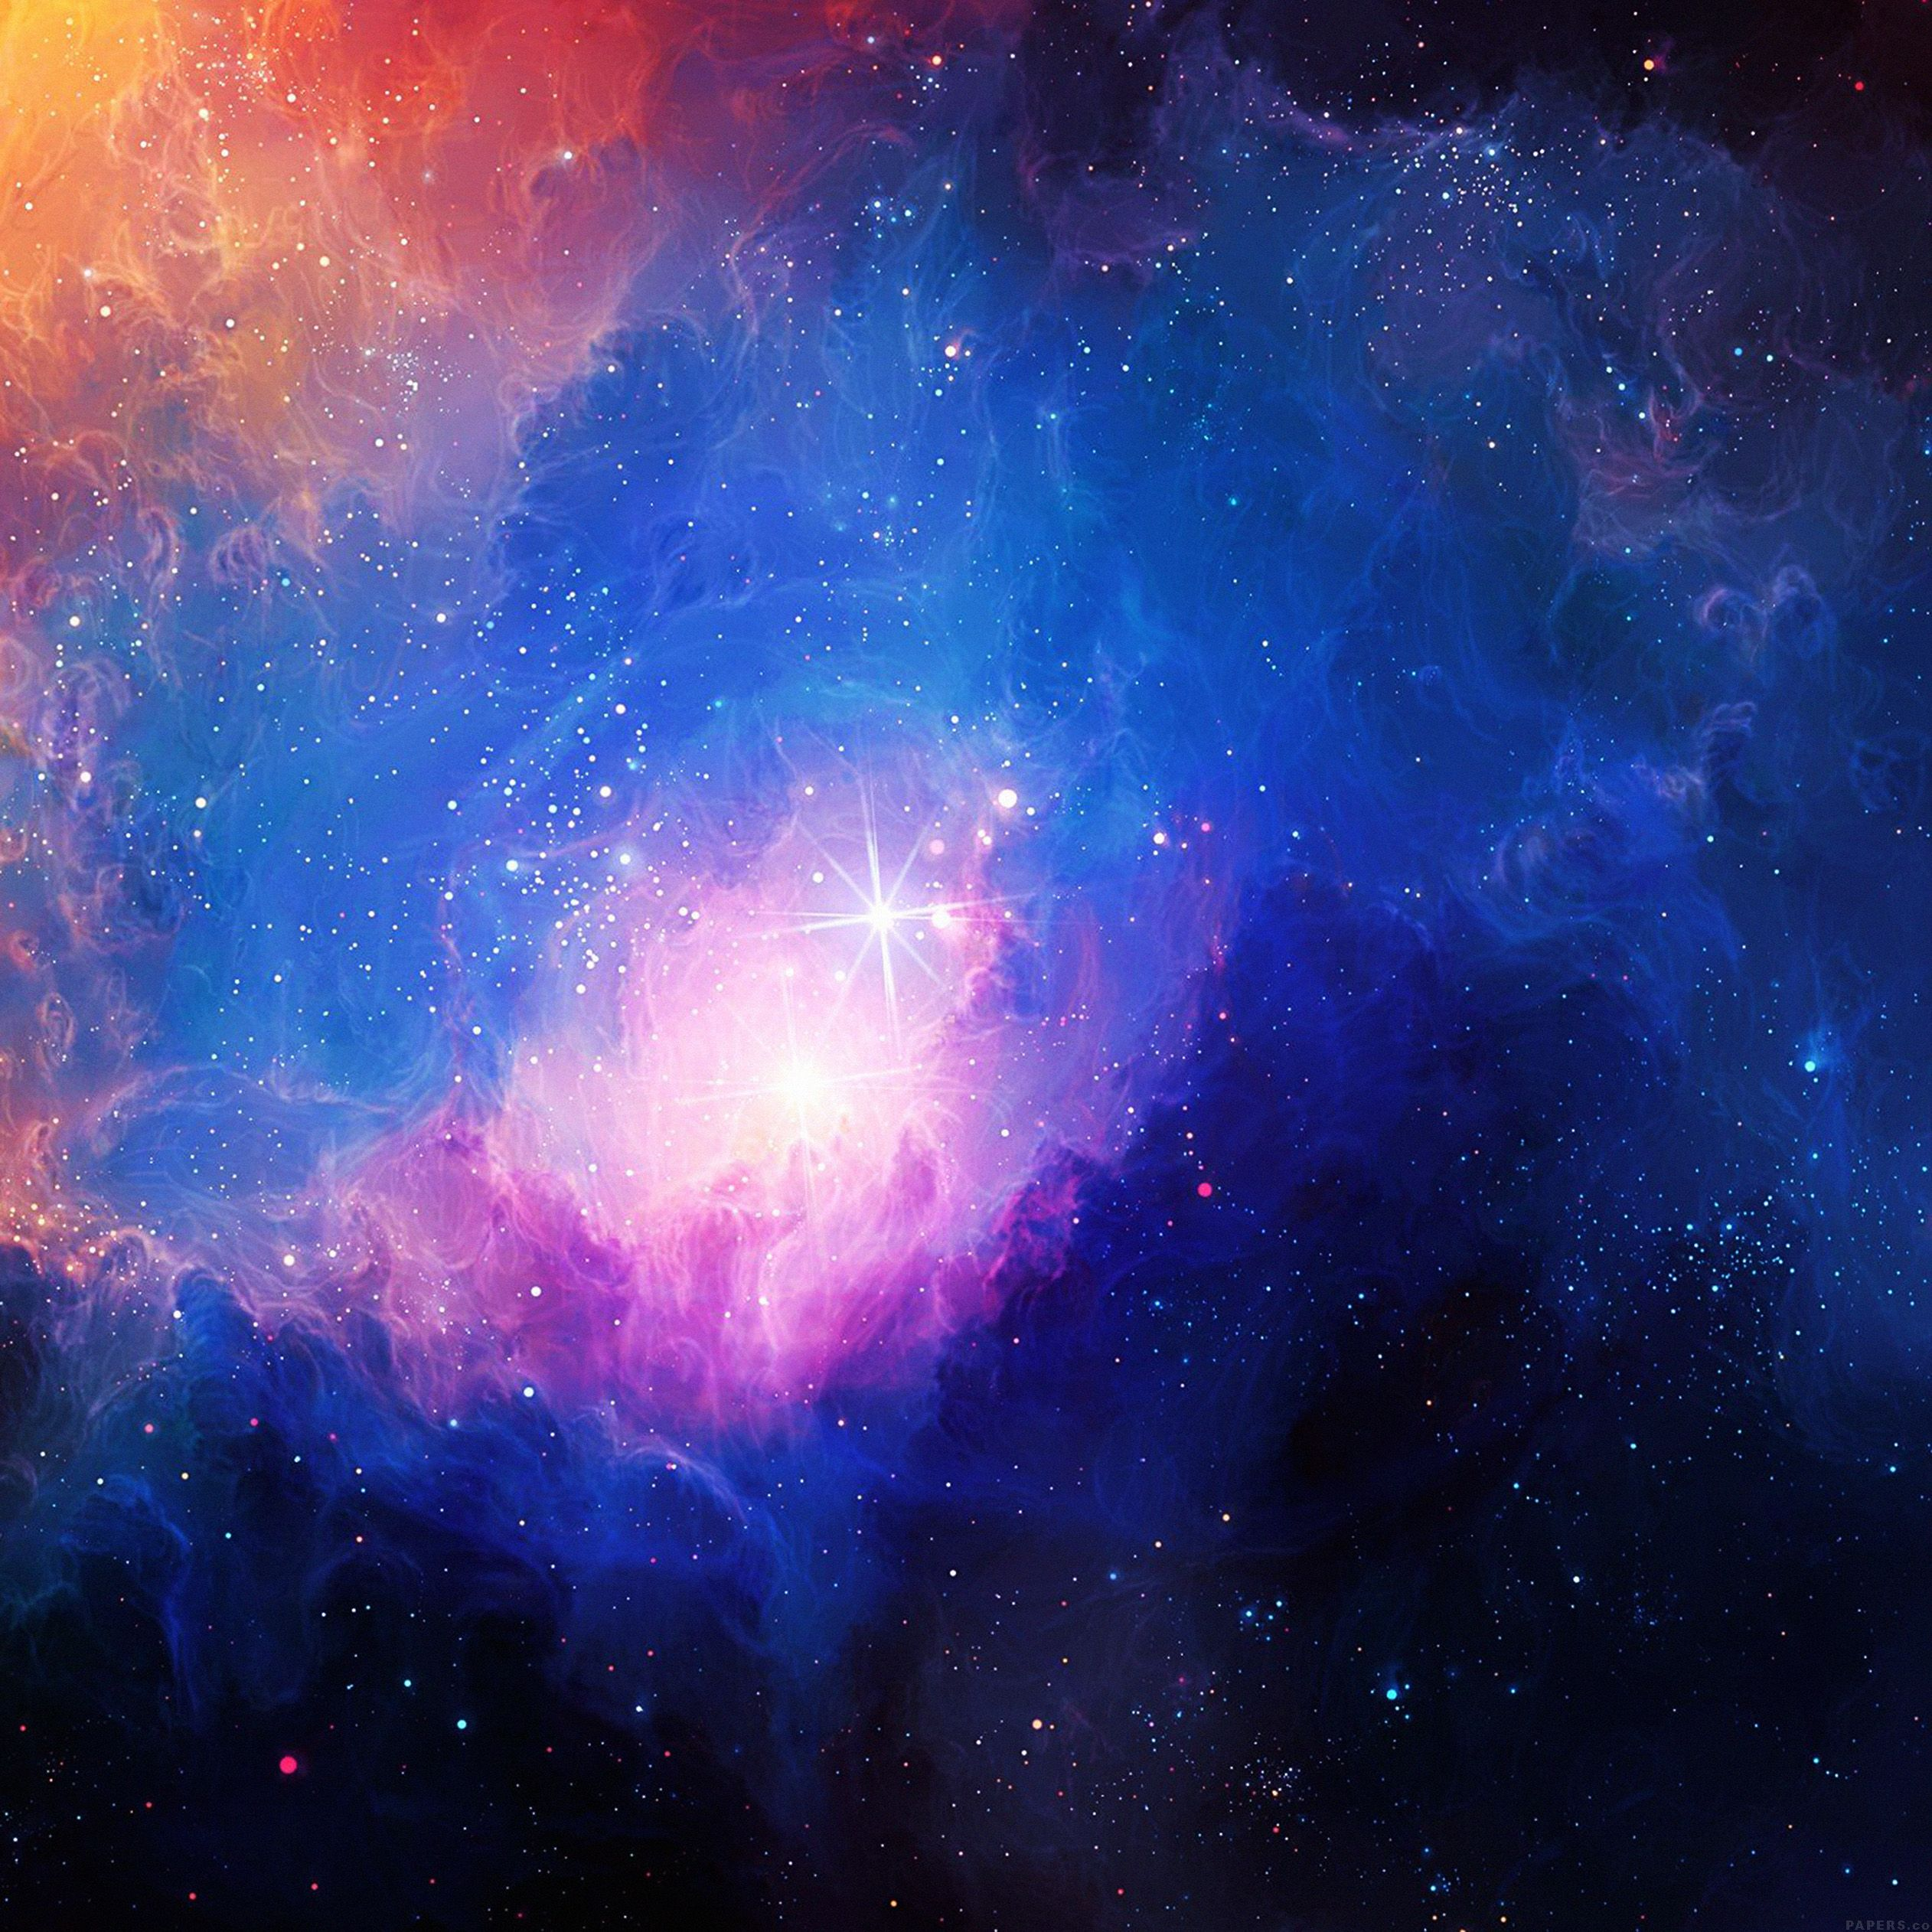 2524x2524 Gorgeous galaxy wallpapers for iPhone and iPad